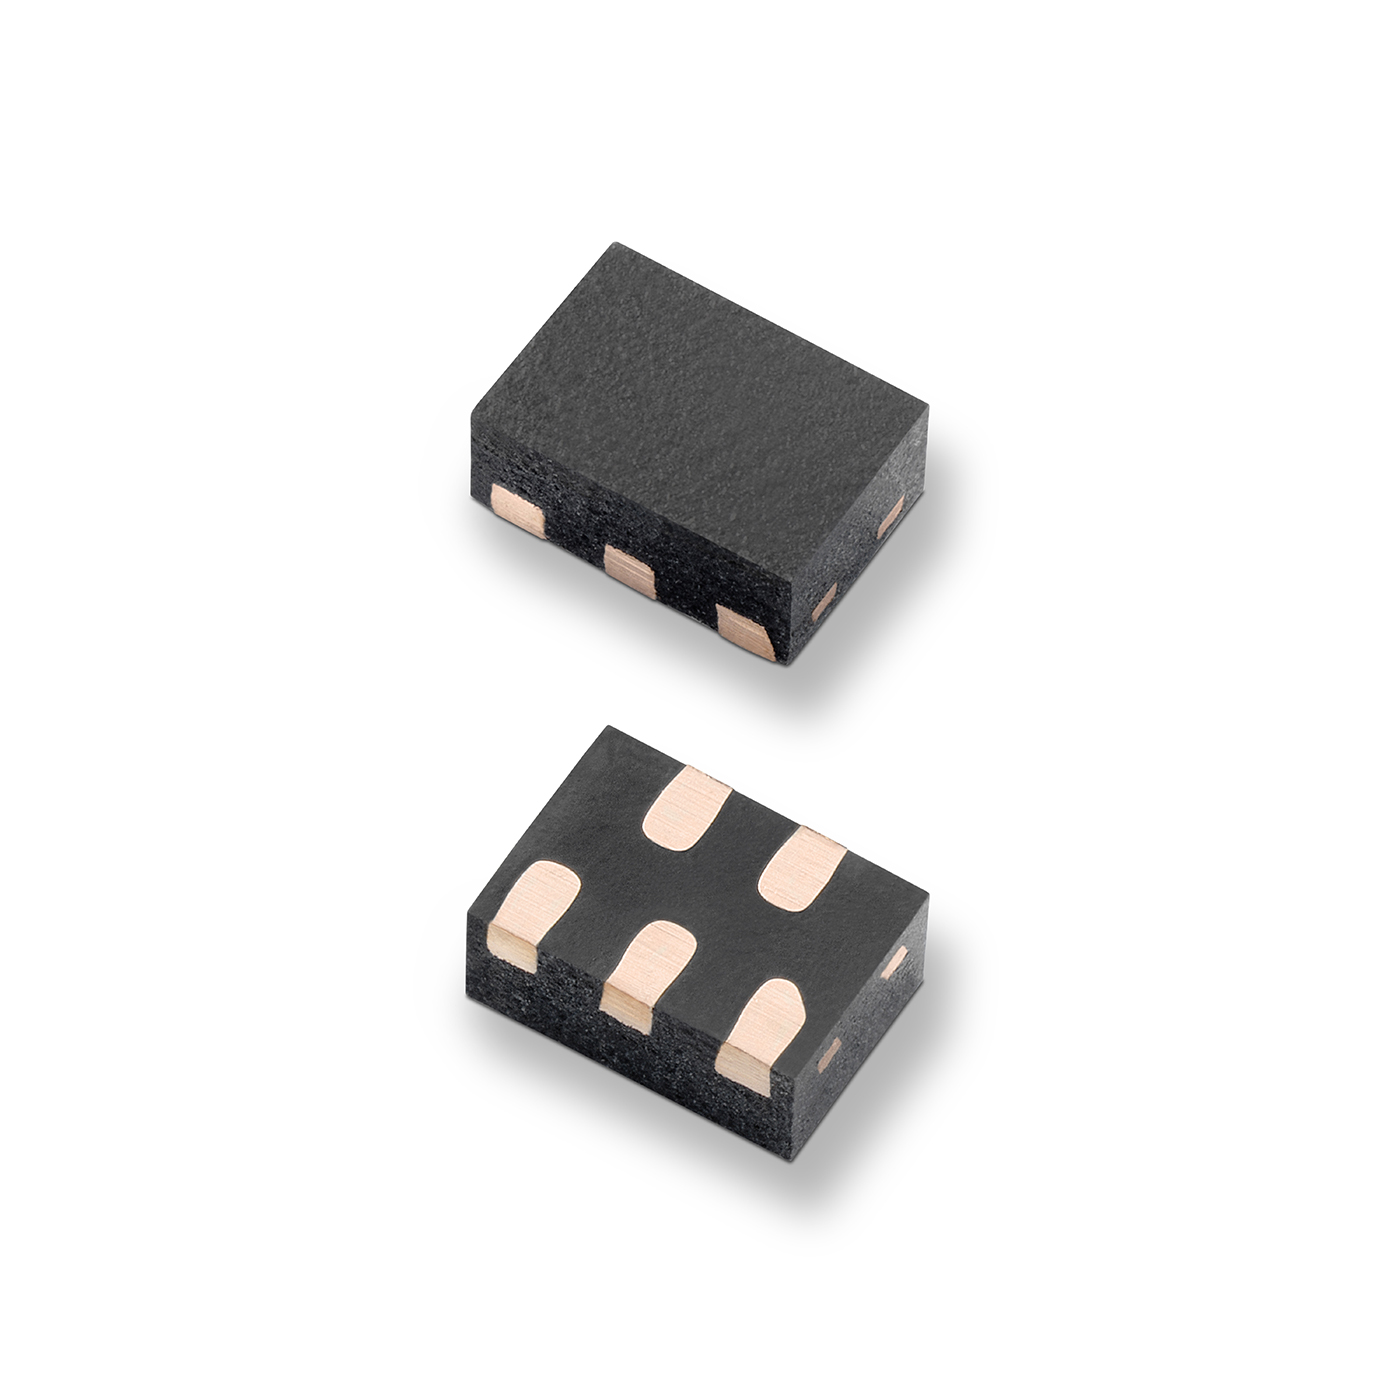 Low-Capacitance TVS Diode Array Is One-Third the Size of Typical Four-Line Arrays